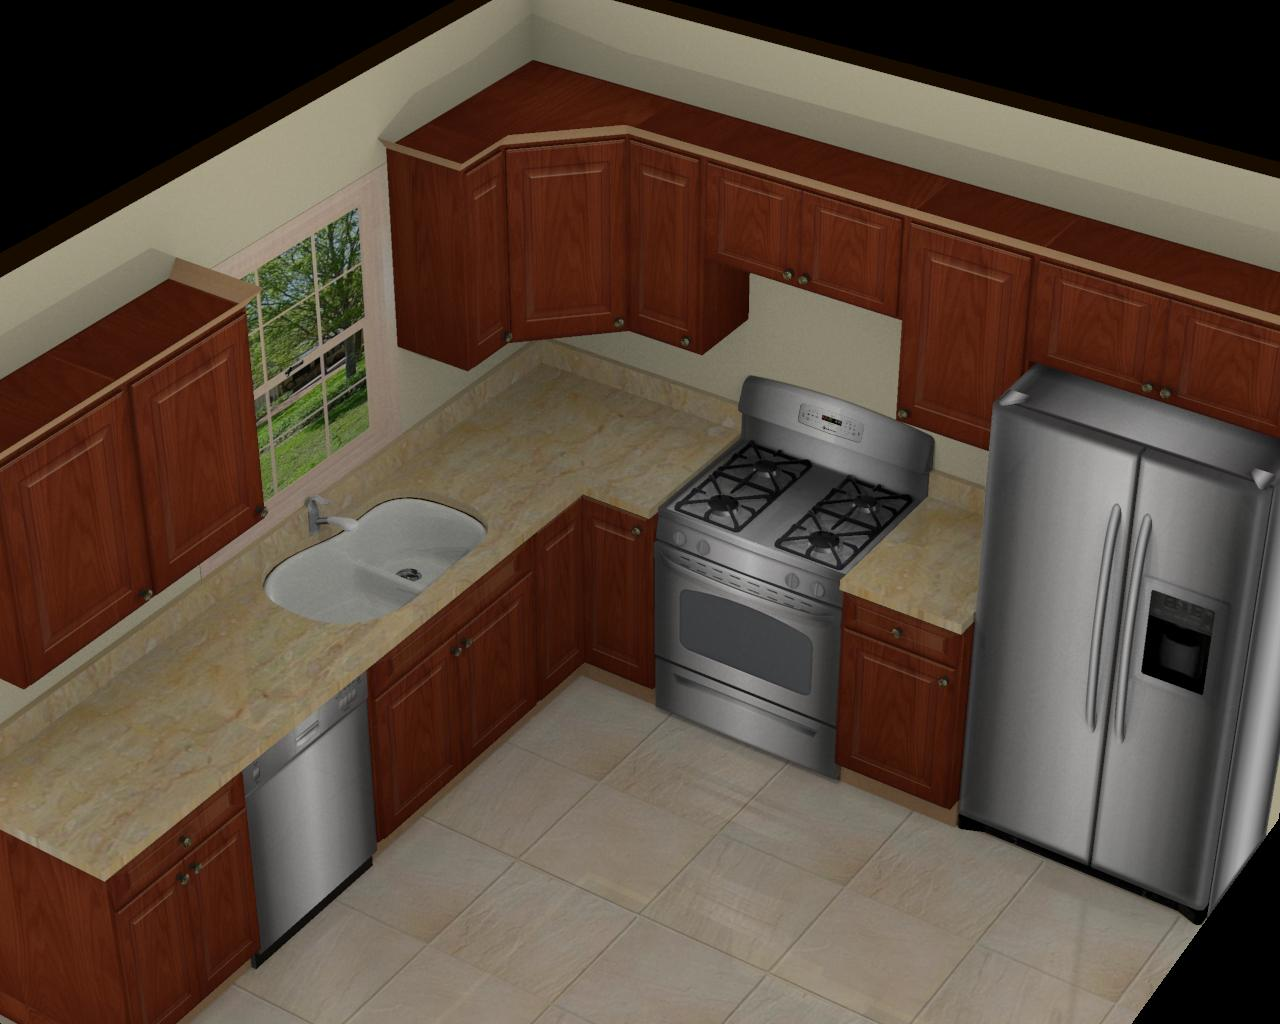 kitchen design shapes foundation dezin amp decor 3d kitchen model design 939